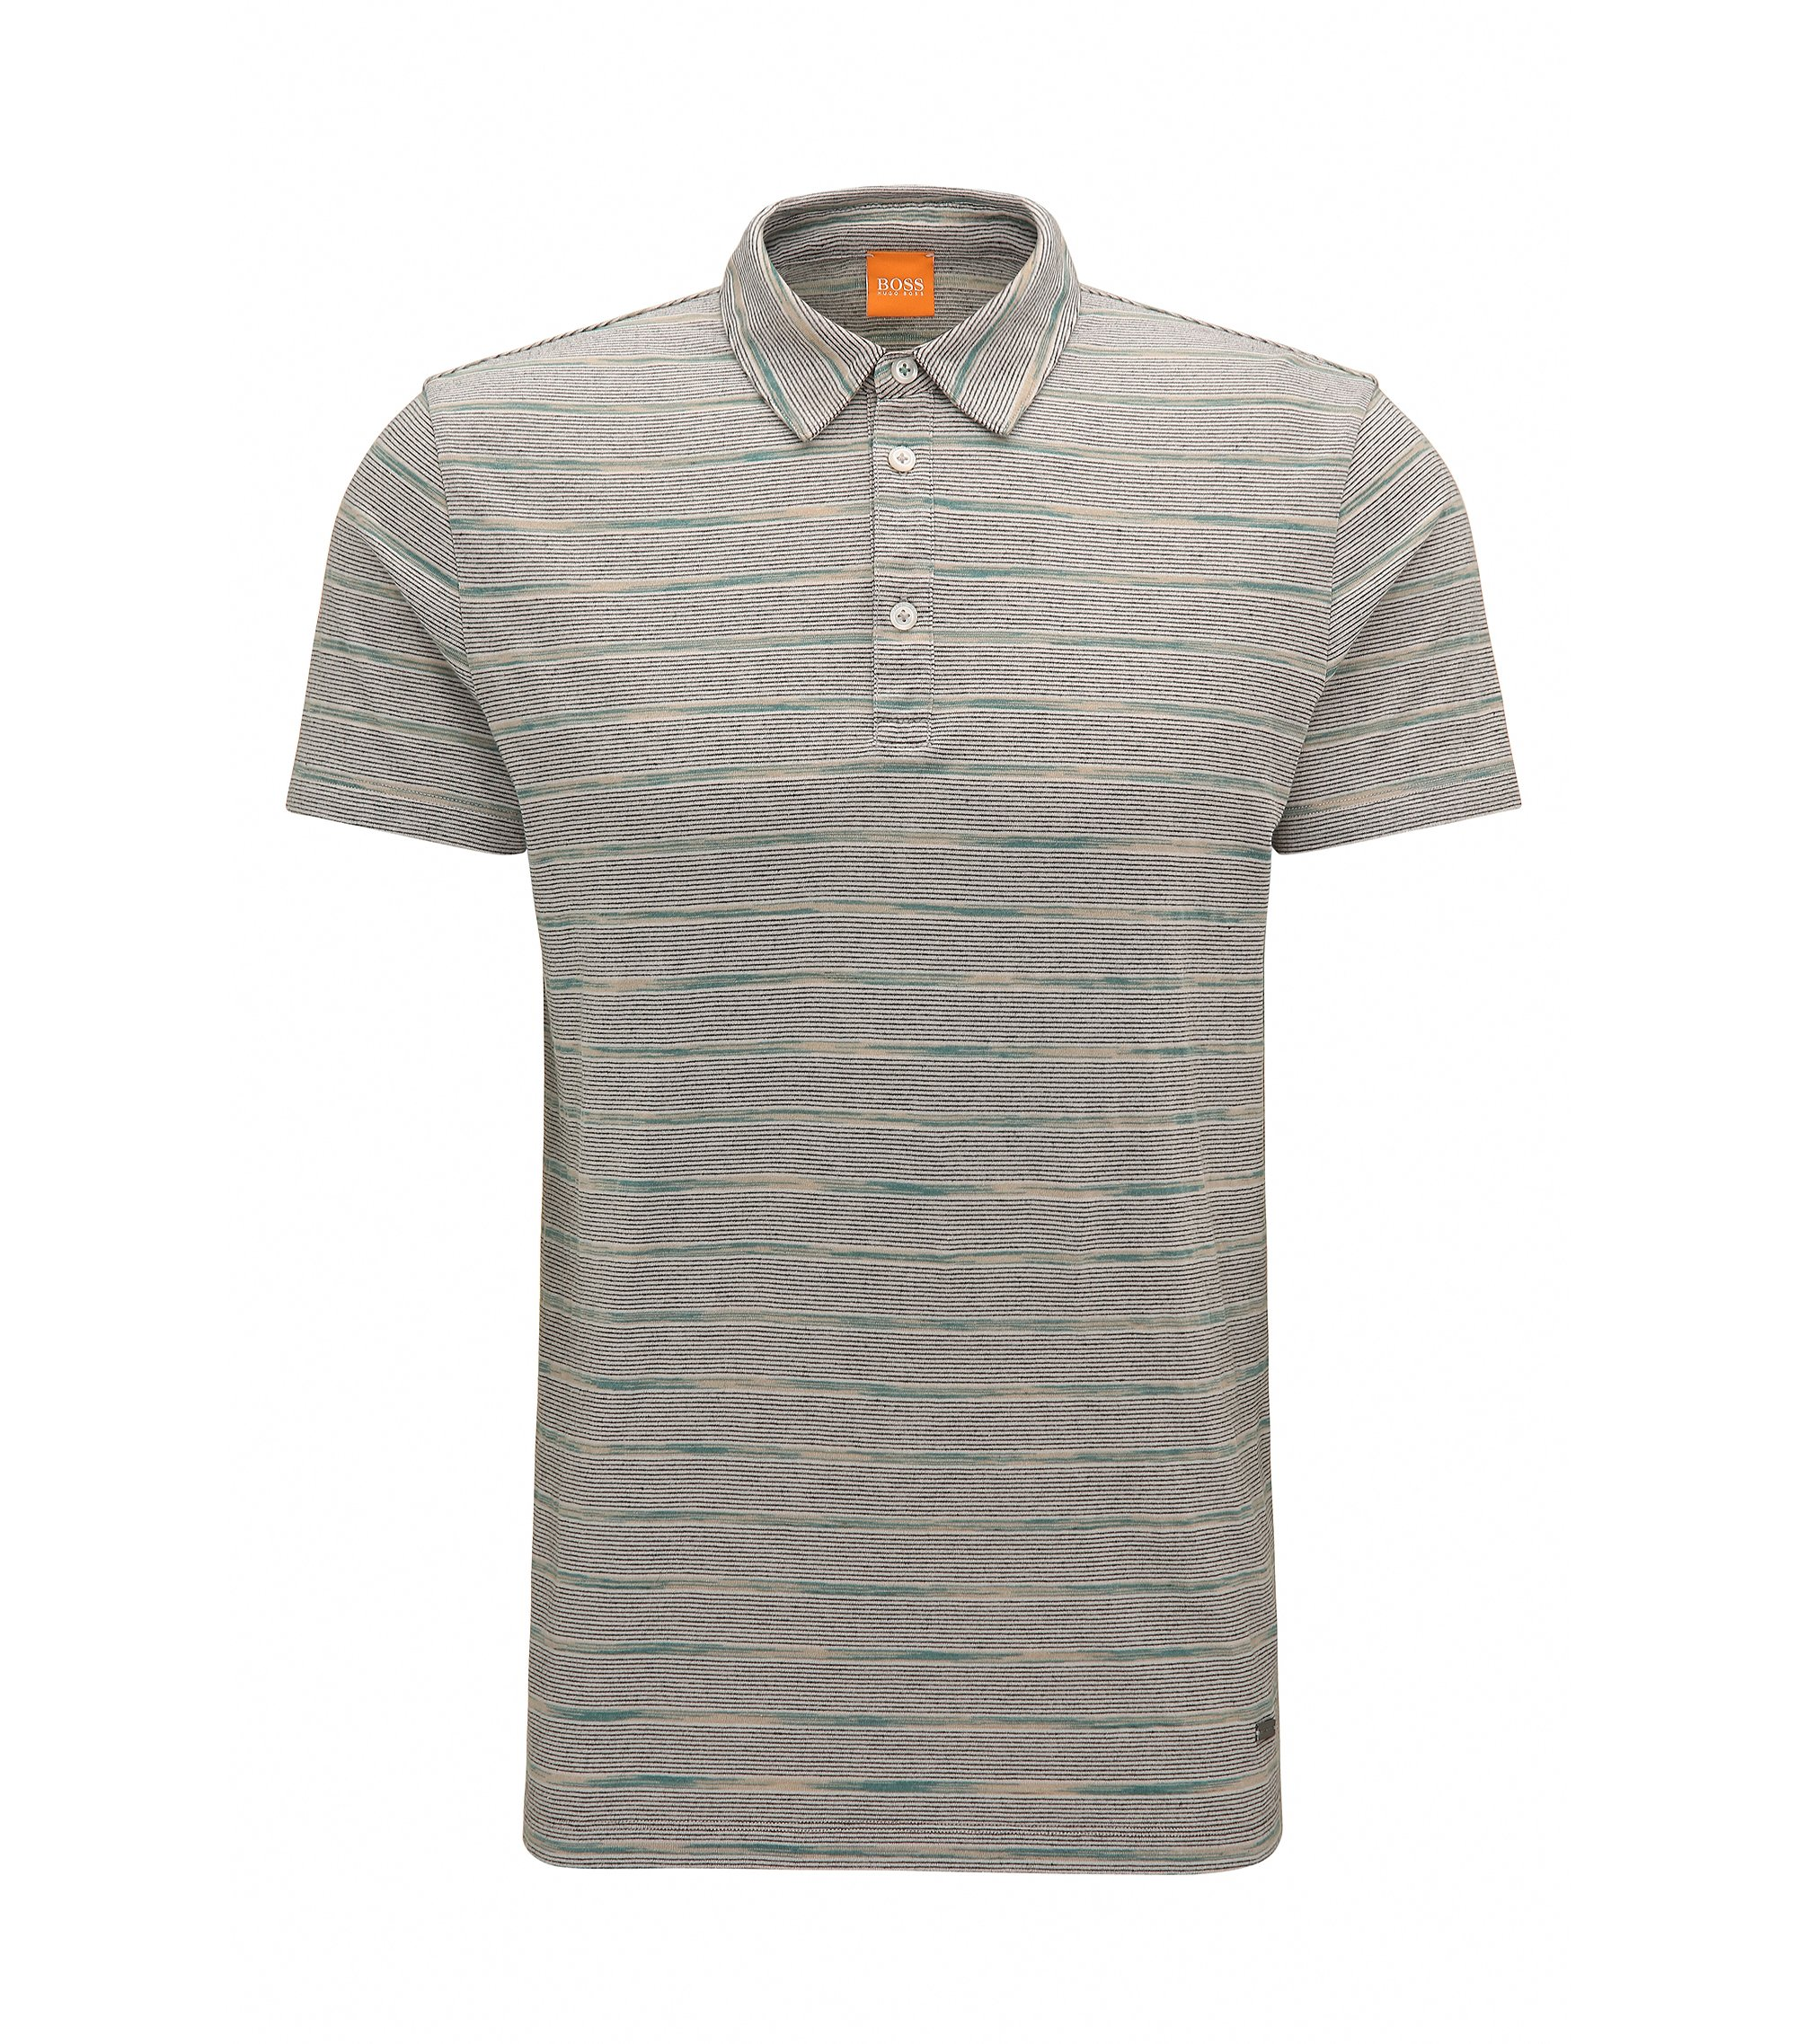 Polo Regular Fit en coton à motif rayé, Gris